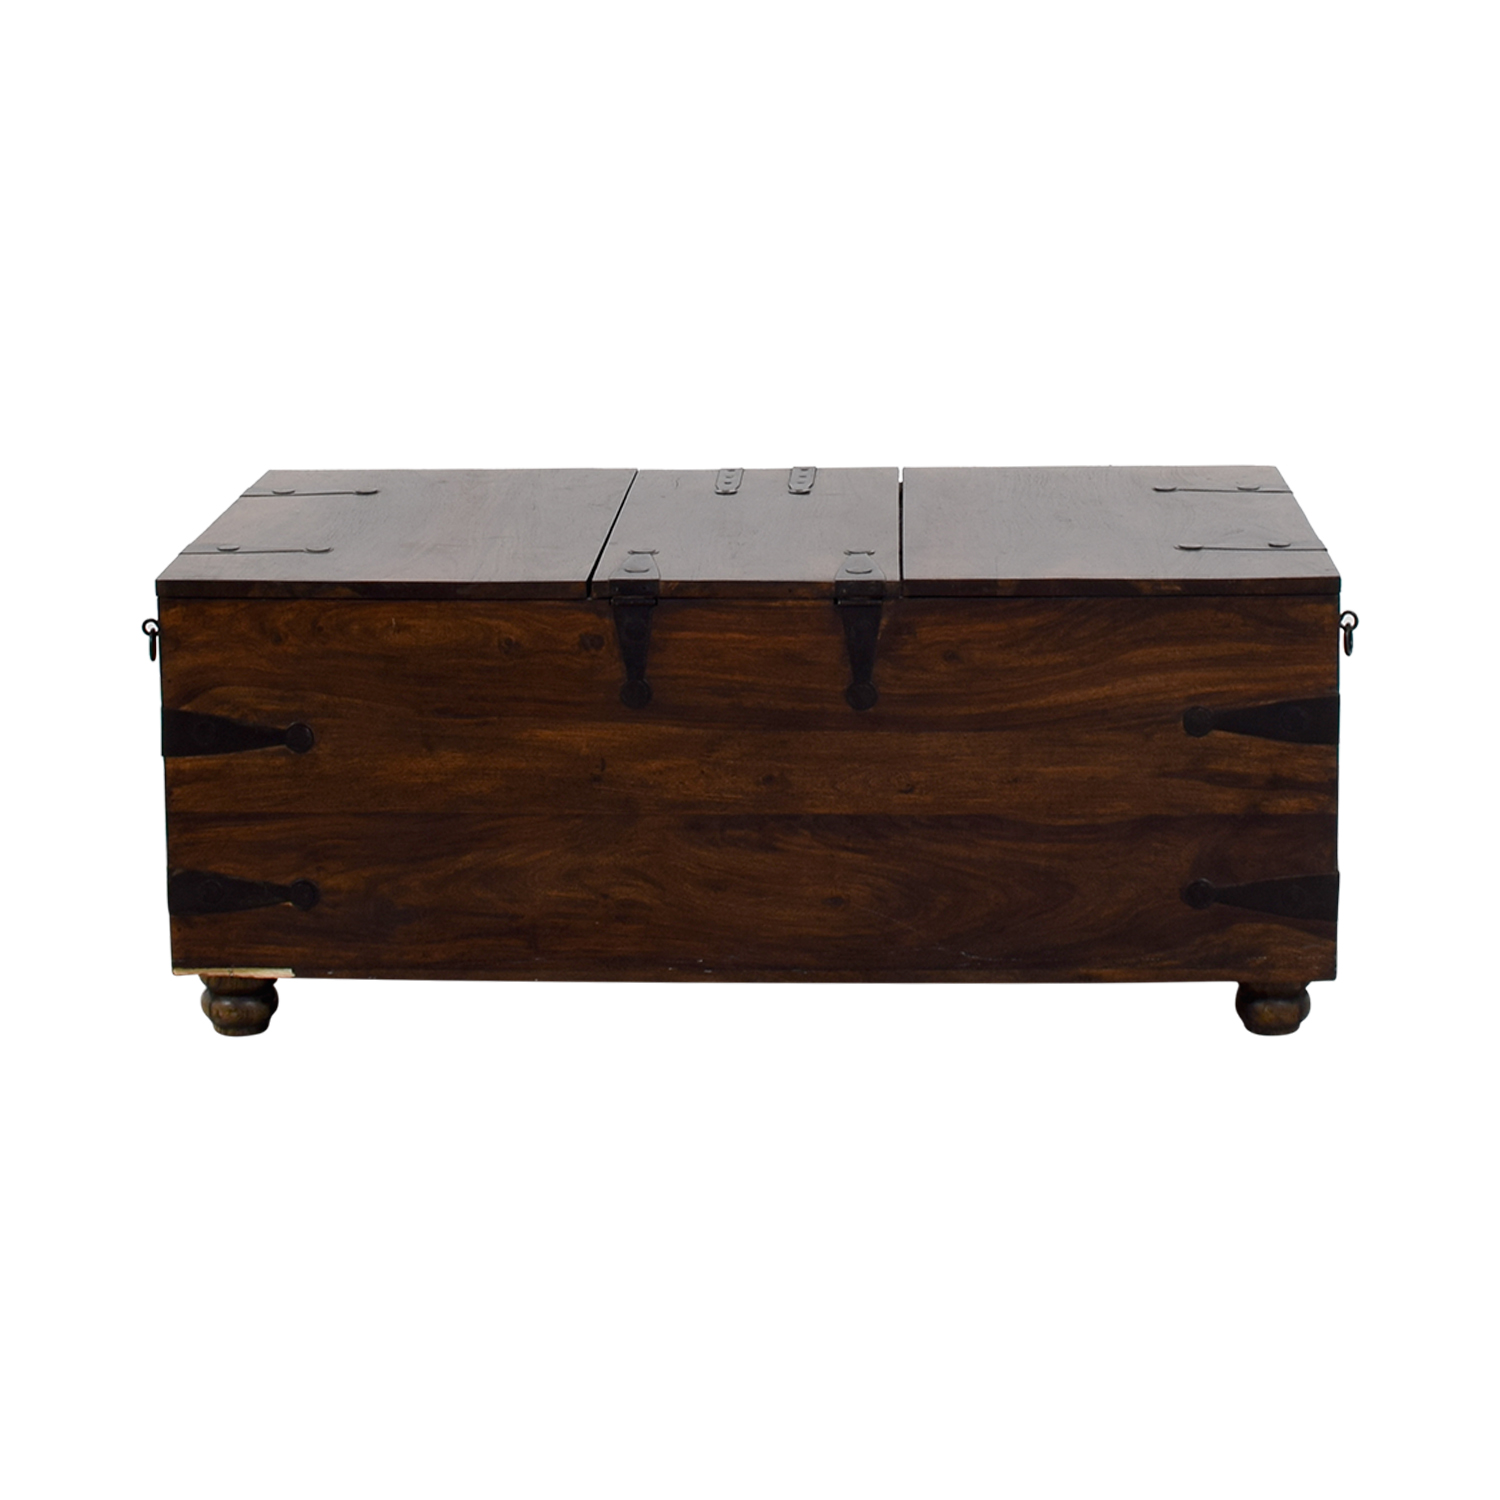 OFF Crate & Barrel Crate & Barrel Trunk Coffee Table Tables